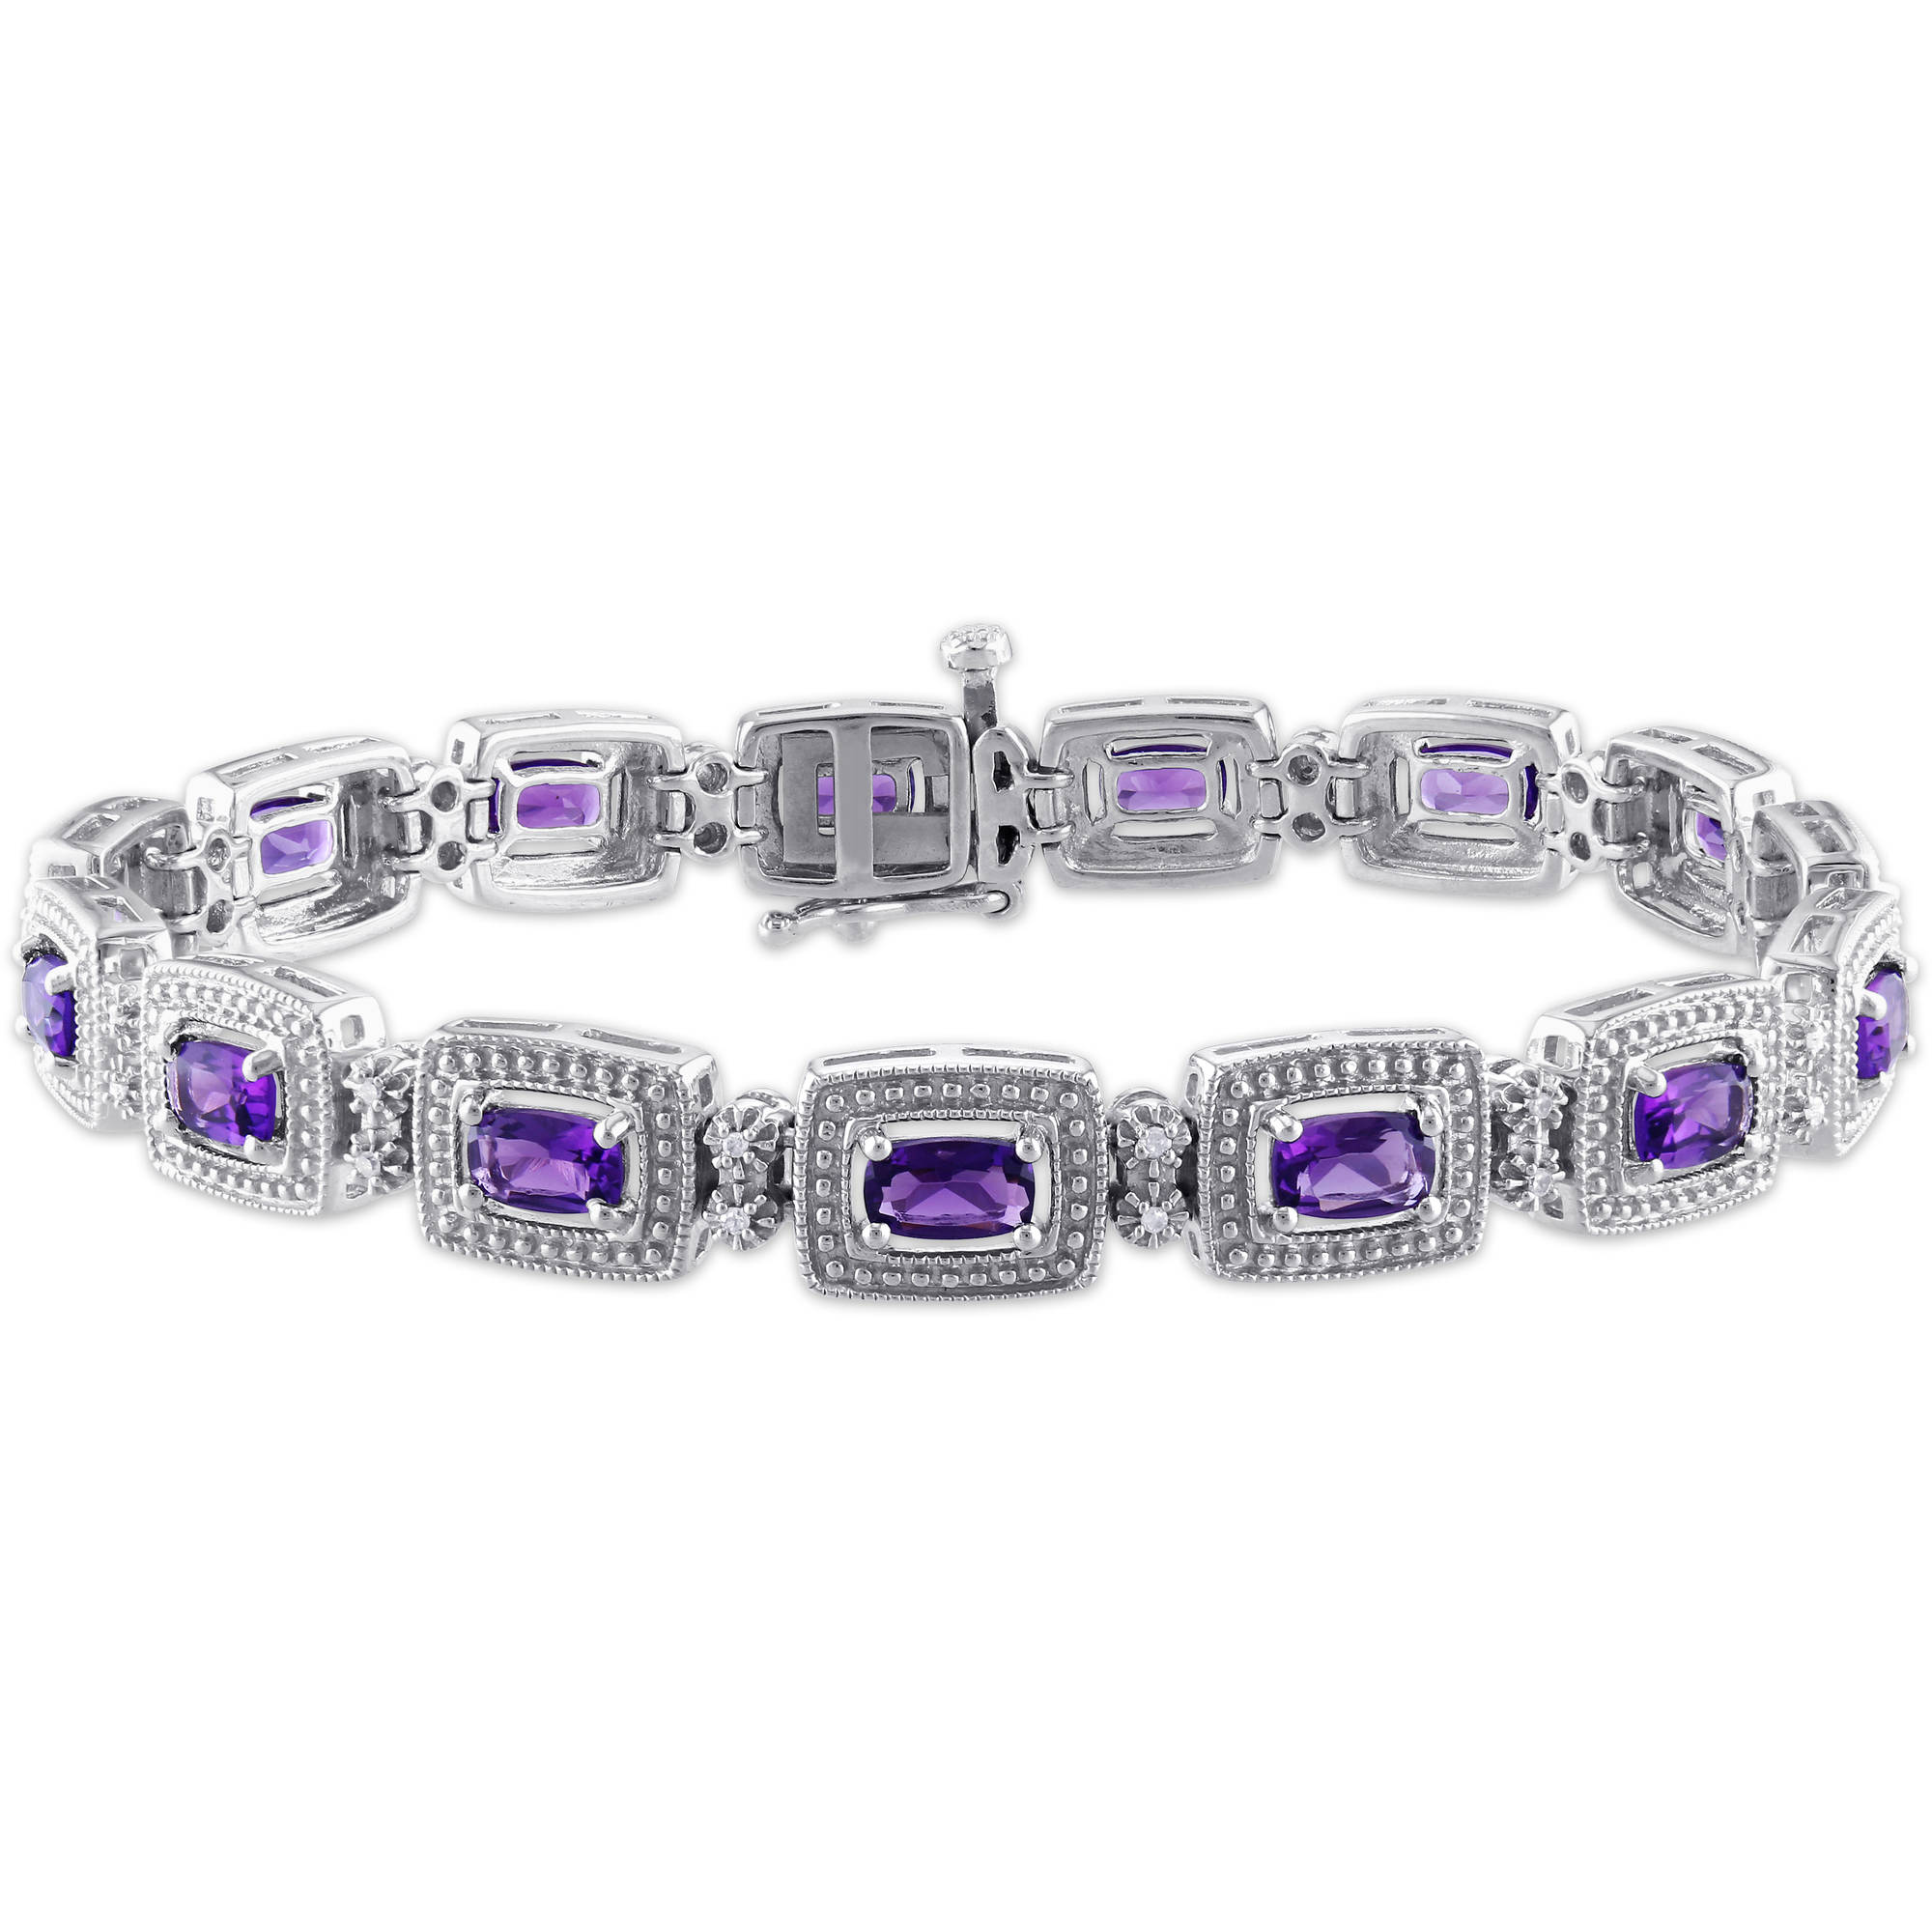 "3-3 4 Carat T.G.W. Amethyst and Diamond Accent Sterling Silver Bracelet, 7"" by Generic"